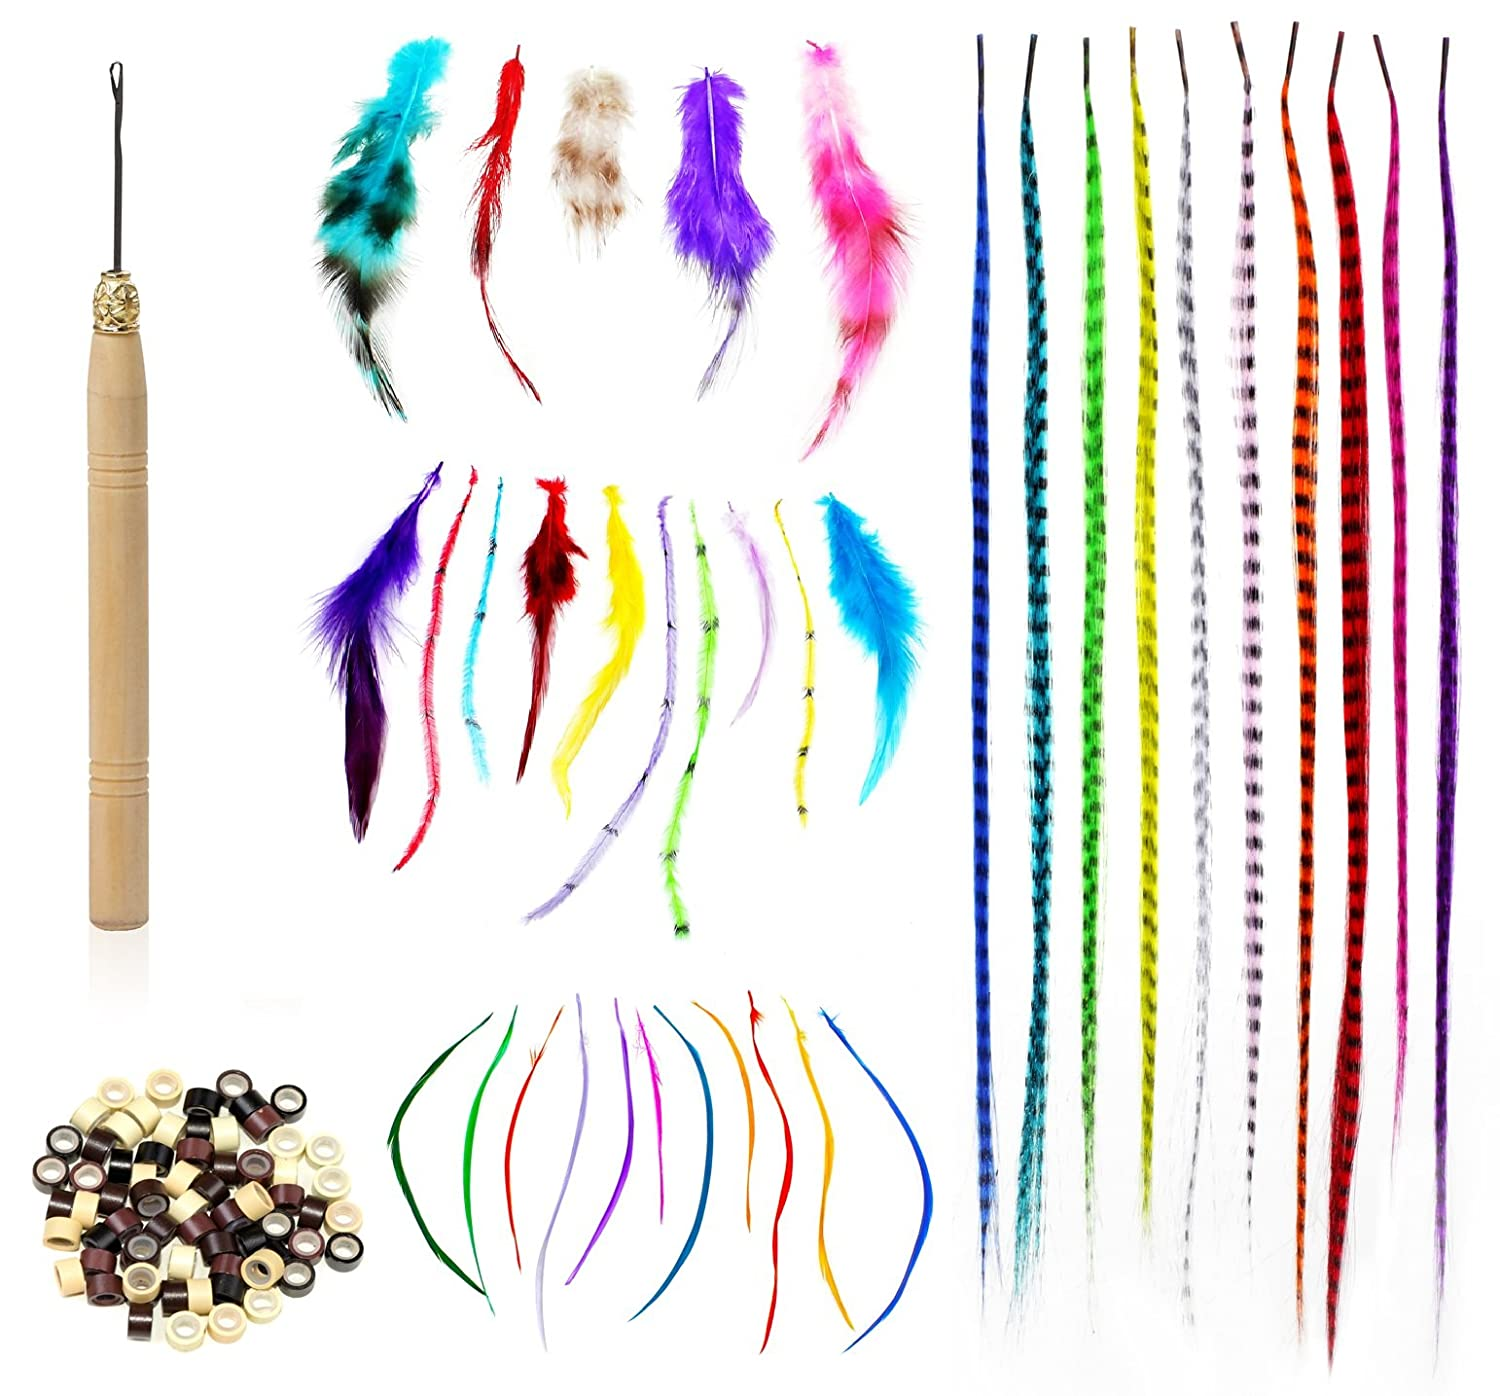 SHANY Cosmetics Feather Hair Extension Kit, 8 Ounce (Feather Hair, Hook, Beads, Feather Grizzly Solid Mix All-In-One)